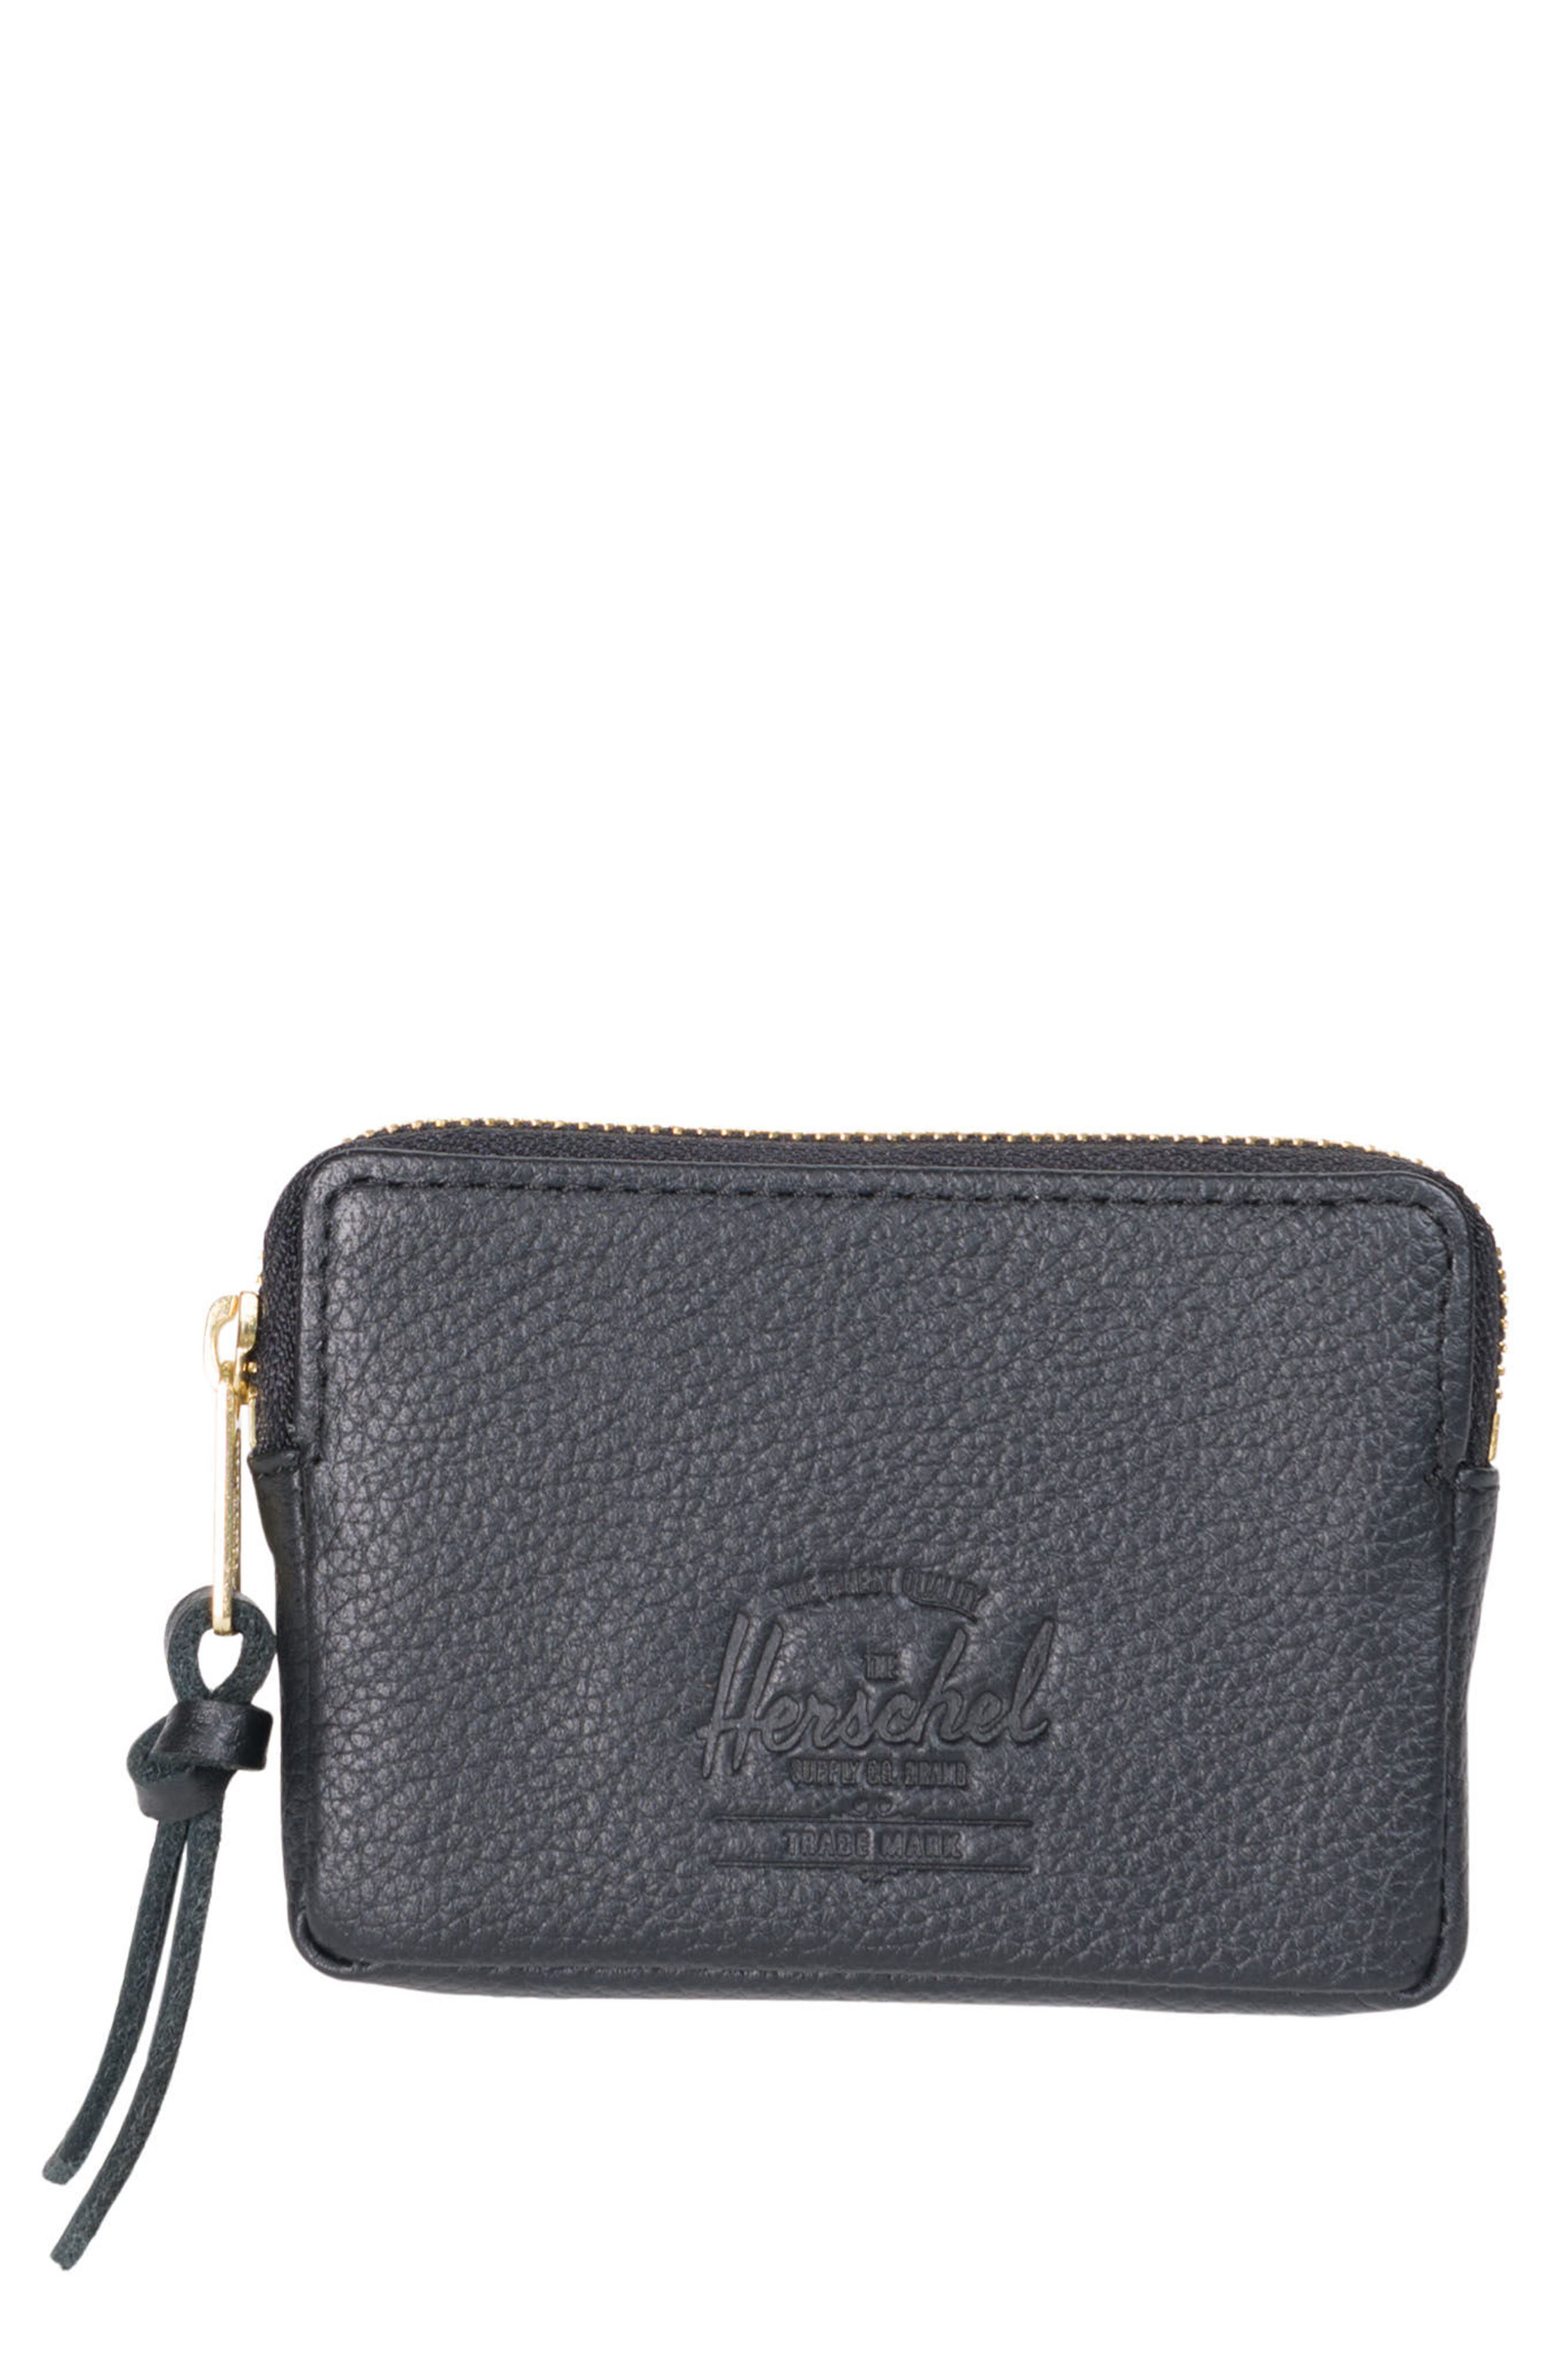 Leather Zip Pouch,                         Main,                         color, Black Pebbled Leather